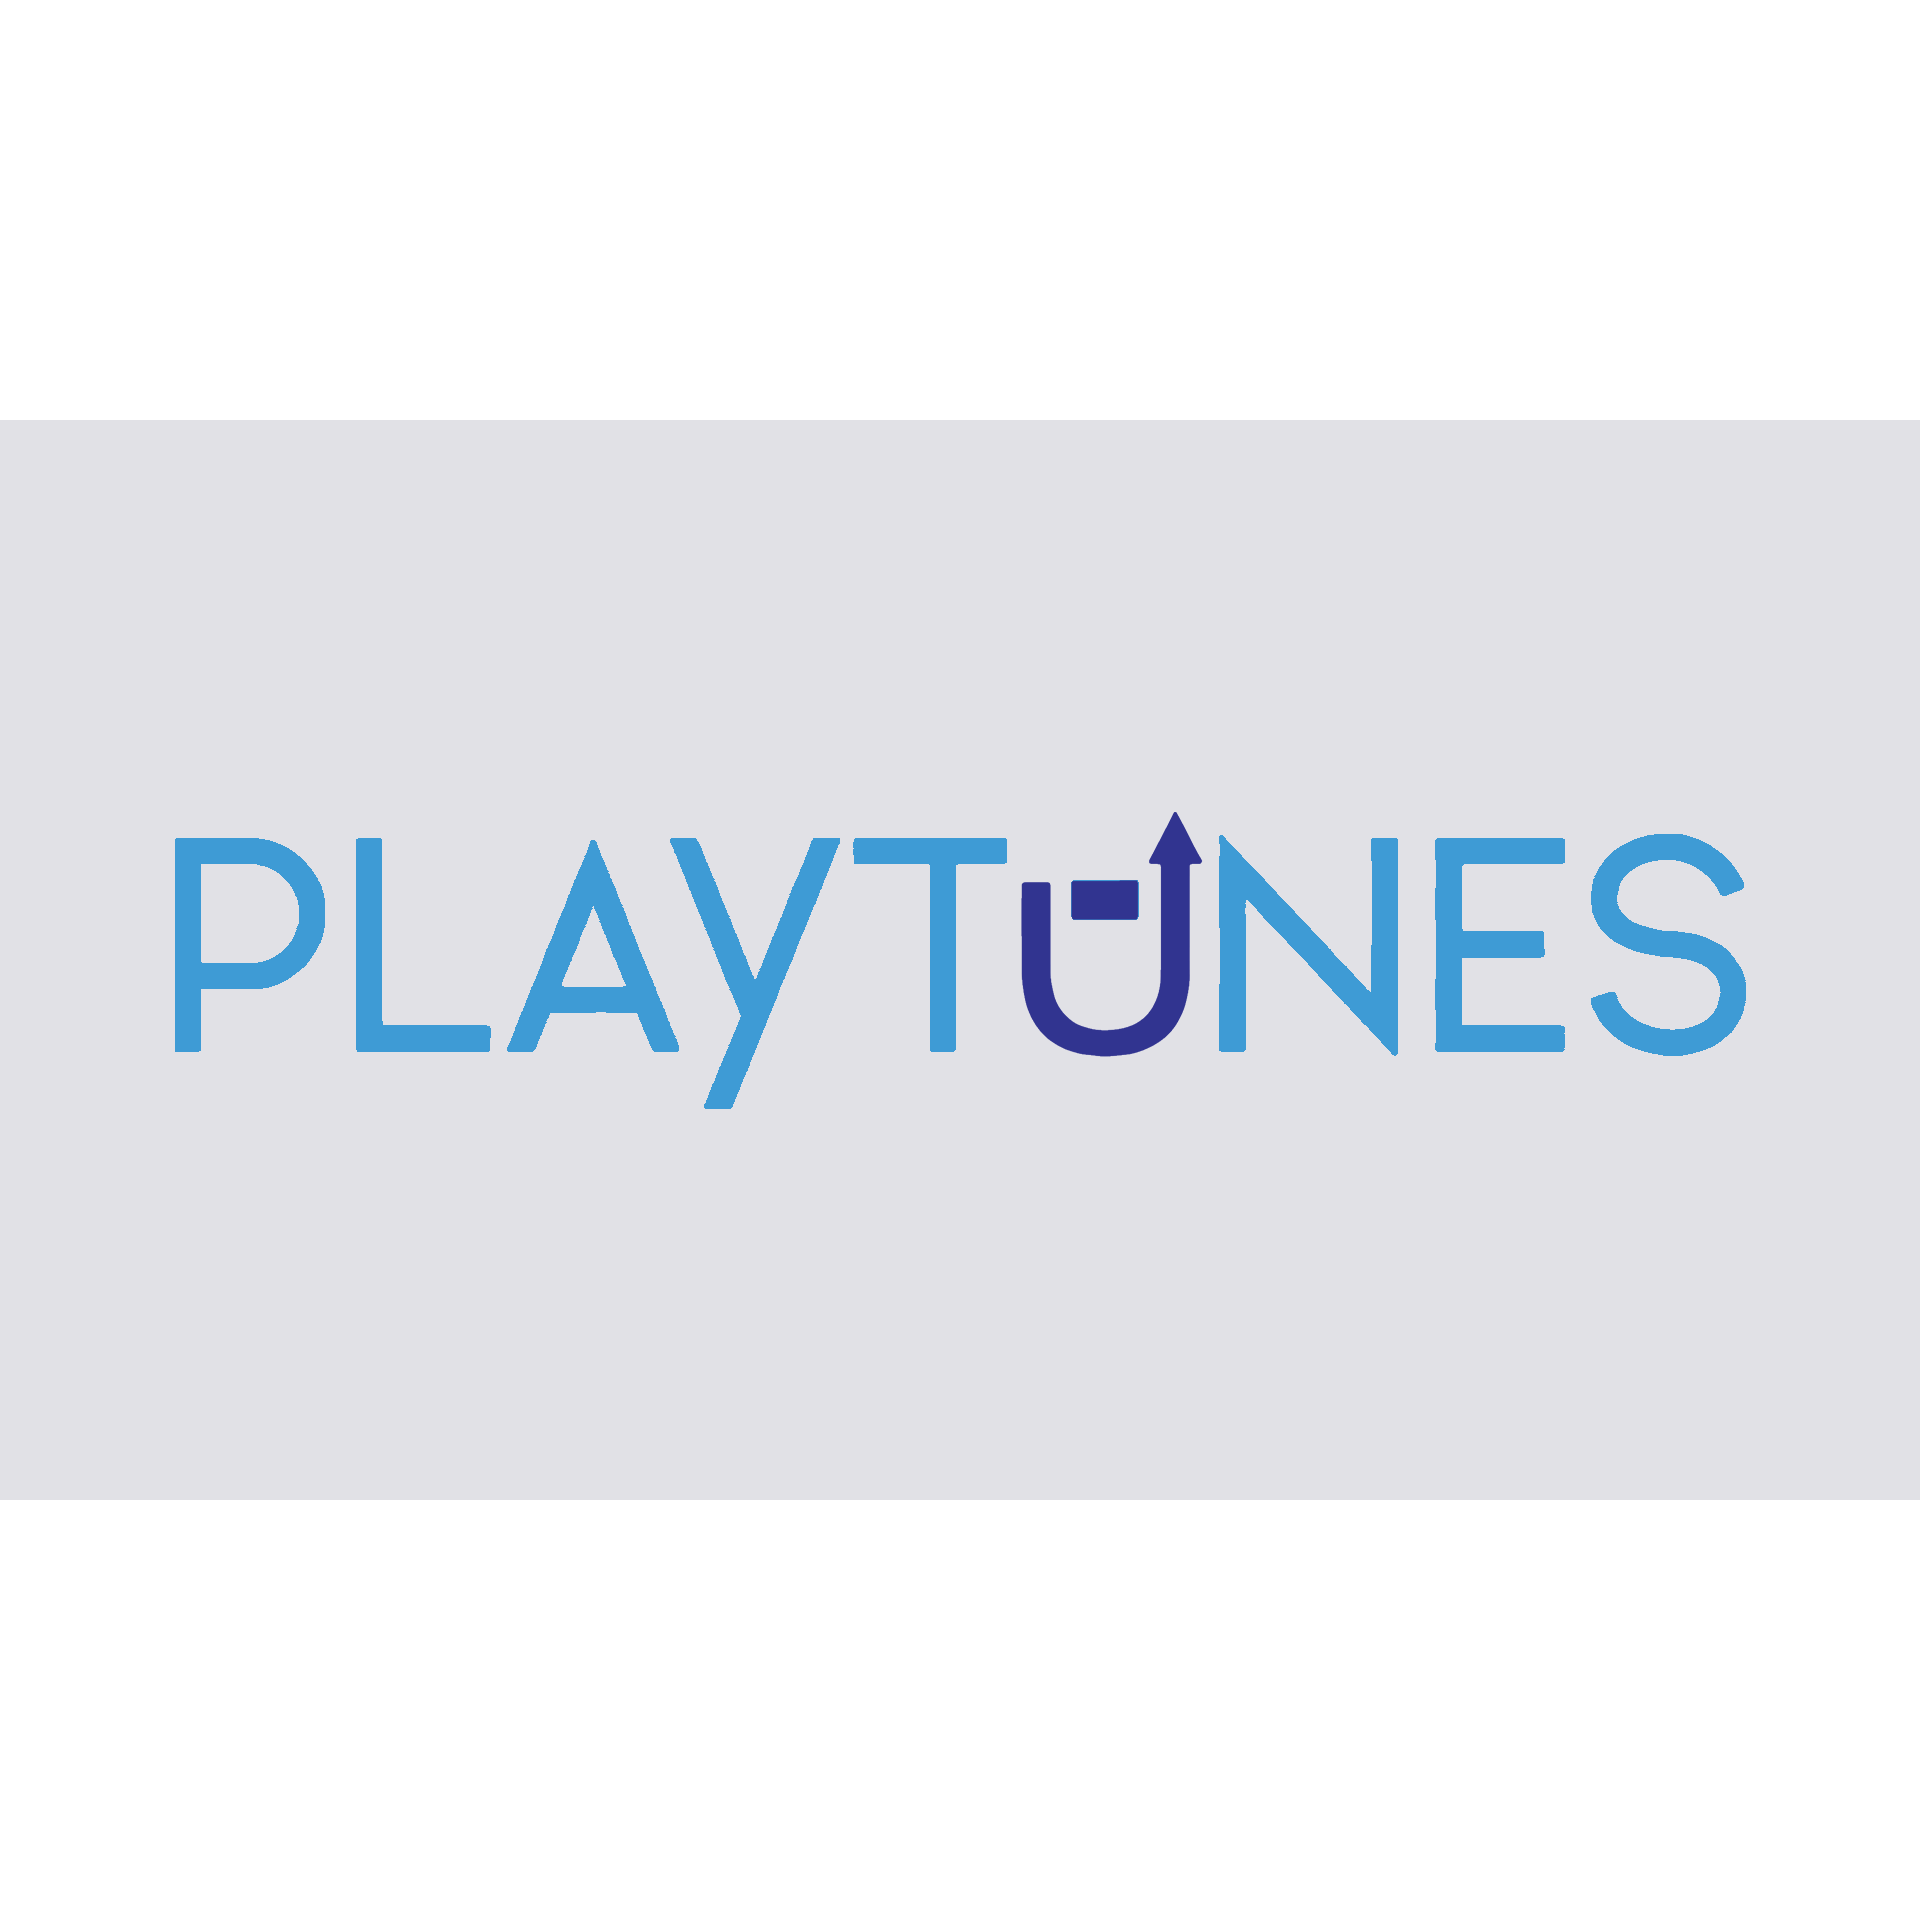 playtunes Aire Project - Playtunes